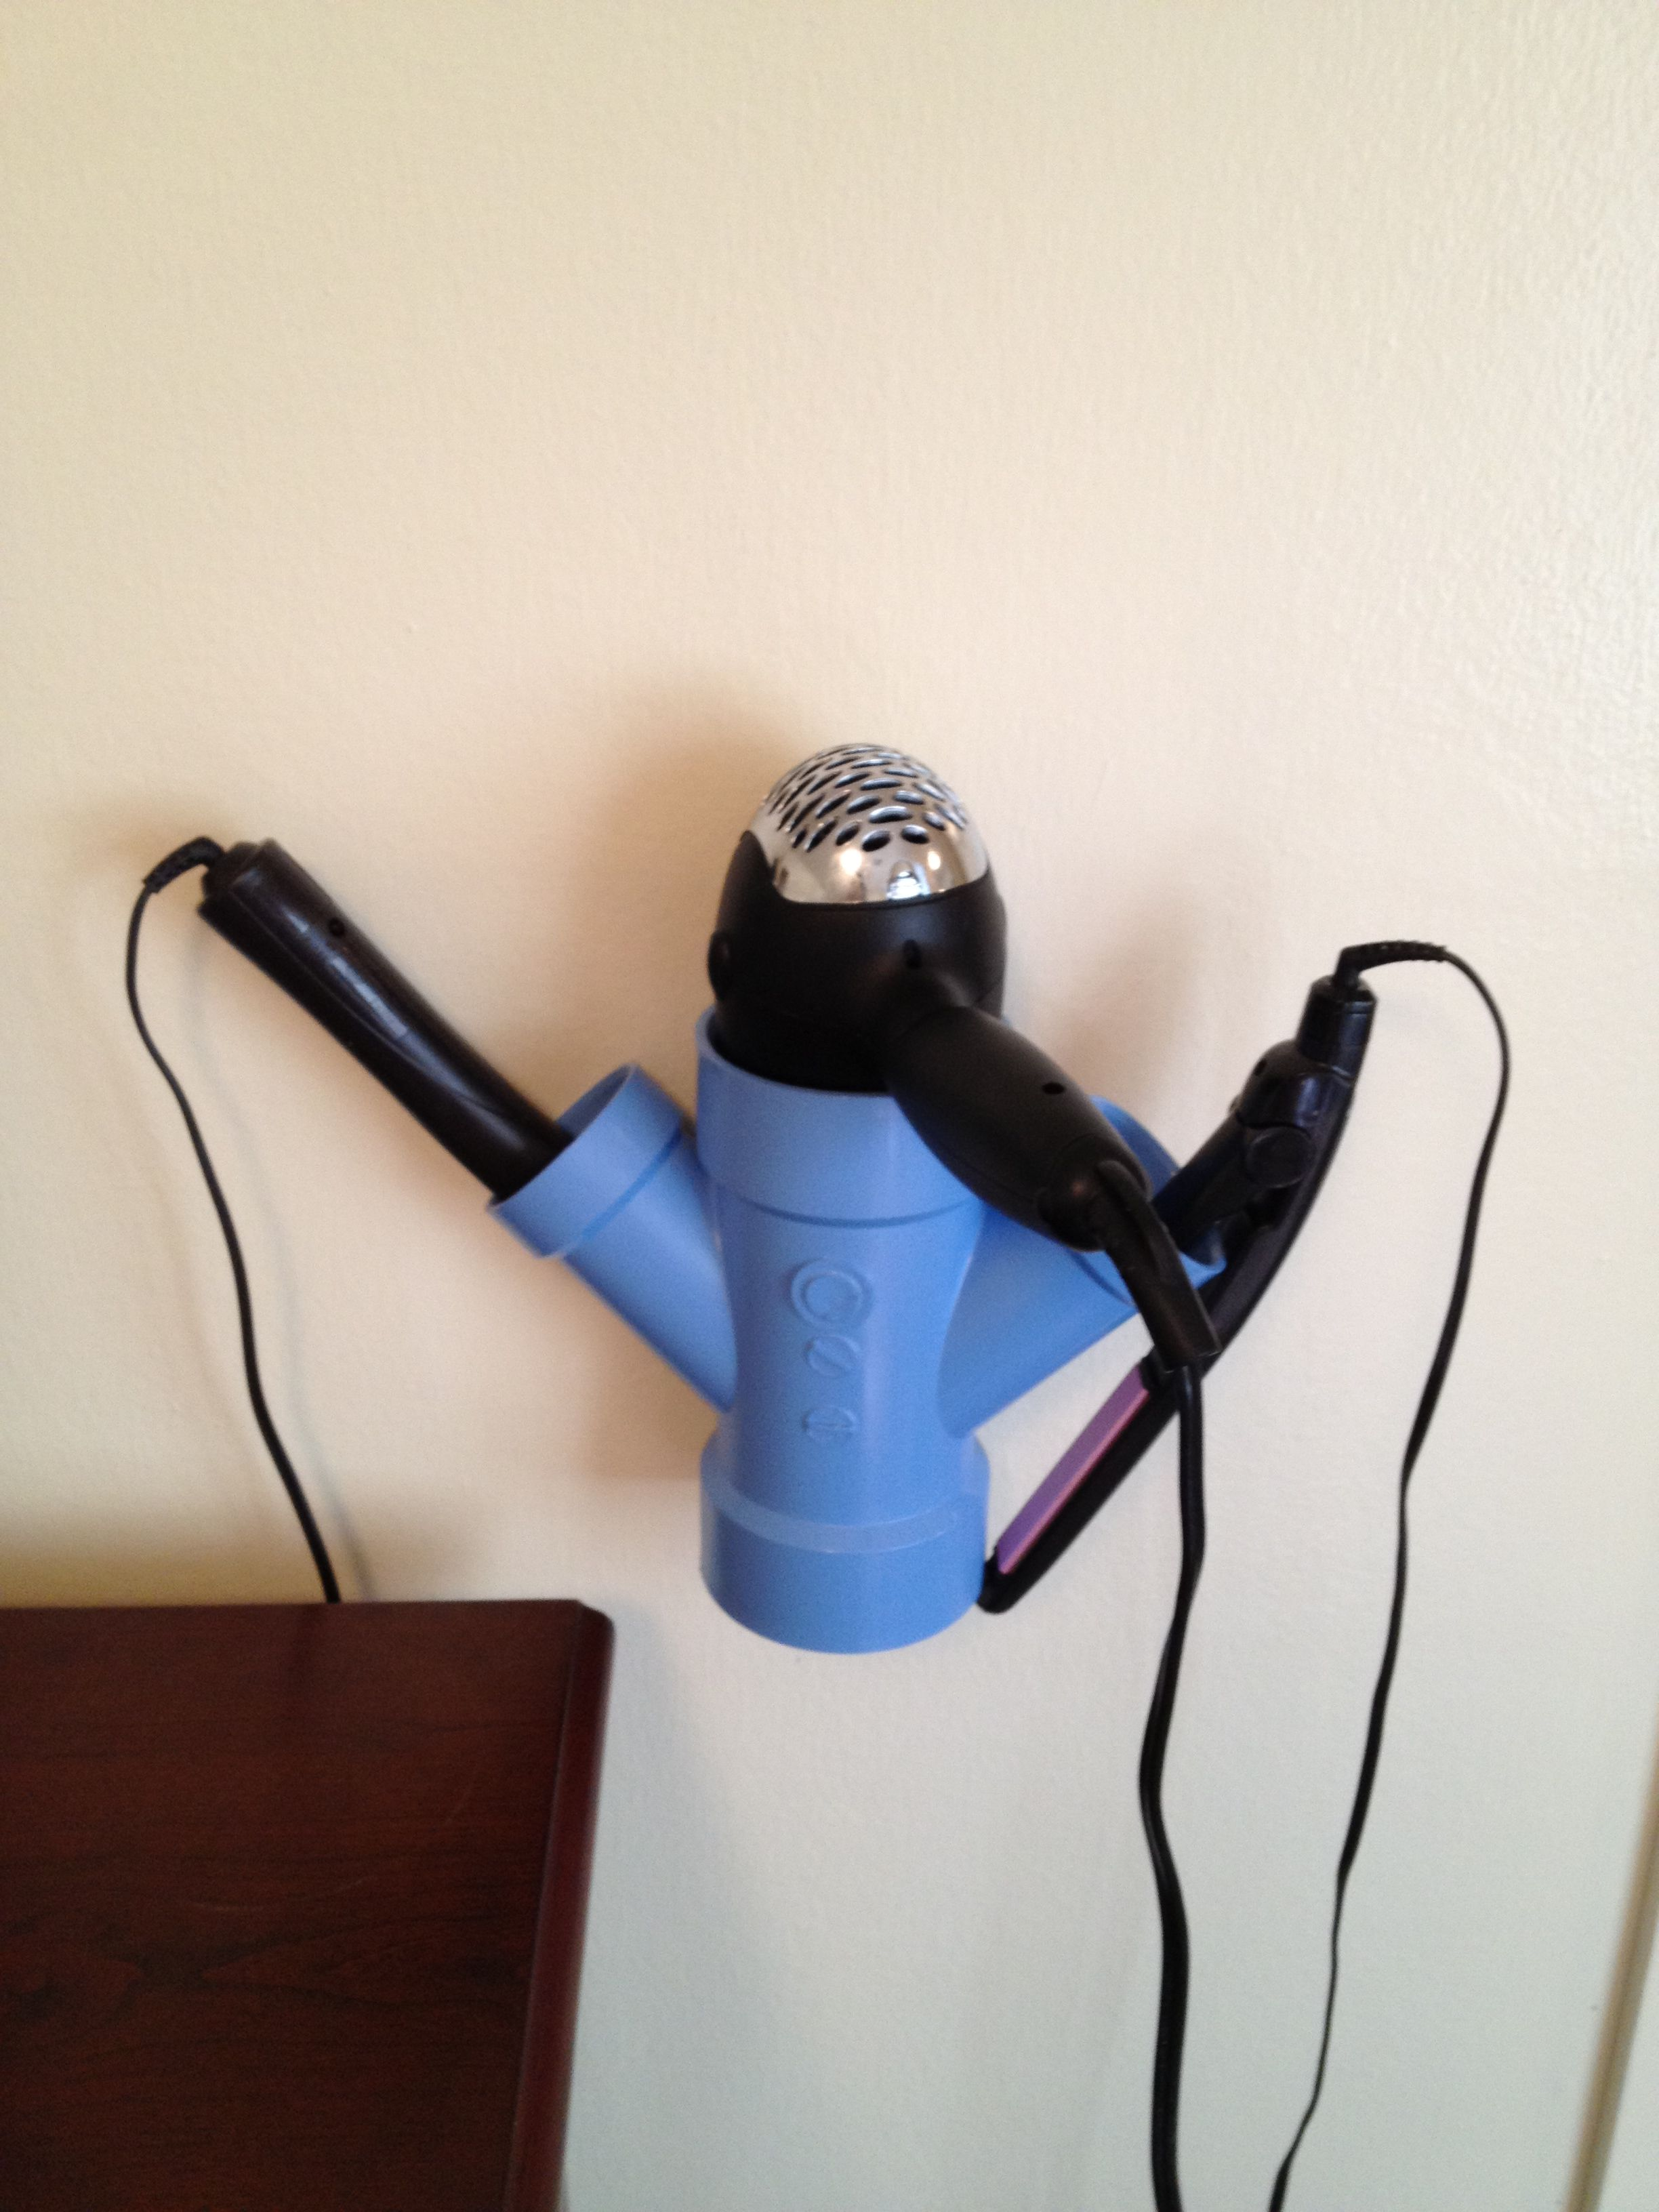 PVC pipe hair dryer straightener and curling wand holder PVC pipe